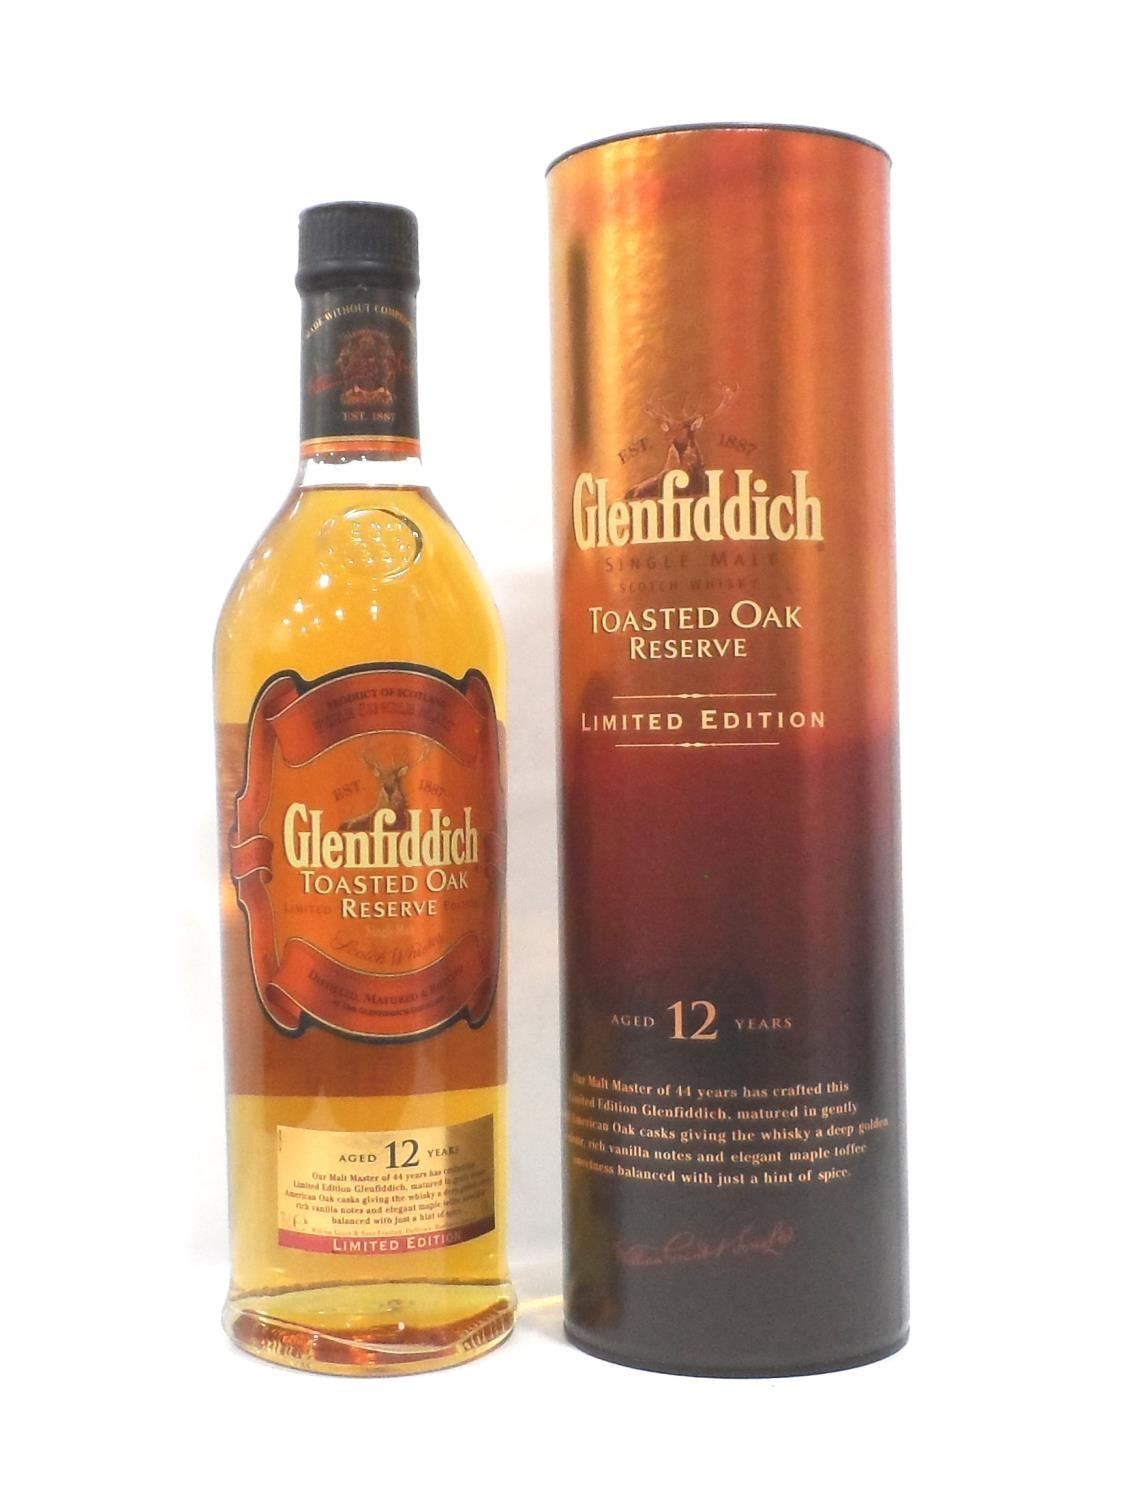 Lot 56 - GLENFIDDICH TOASTED OAK RESERVE A Limited Edition bottling of Glenfiddich Toasted Oak Reserve 12